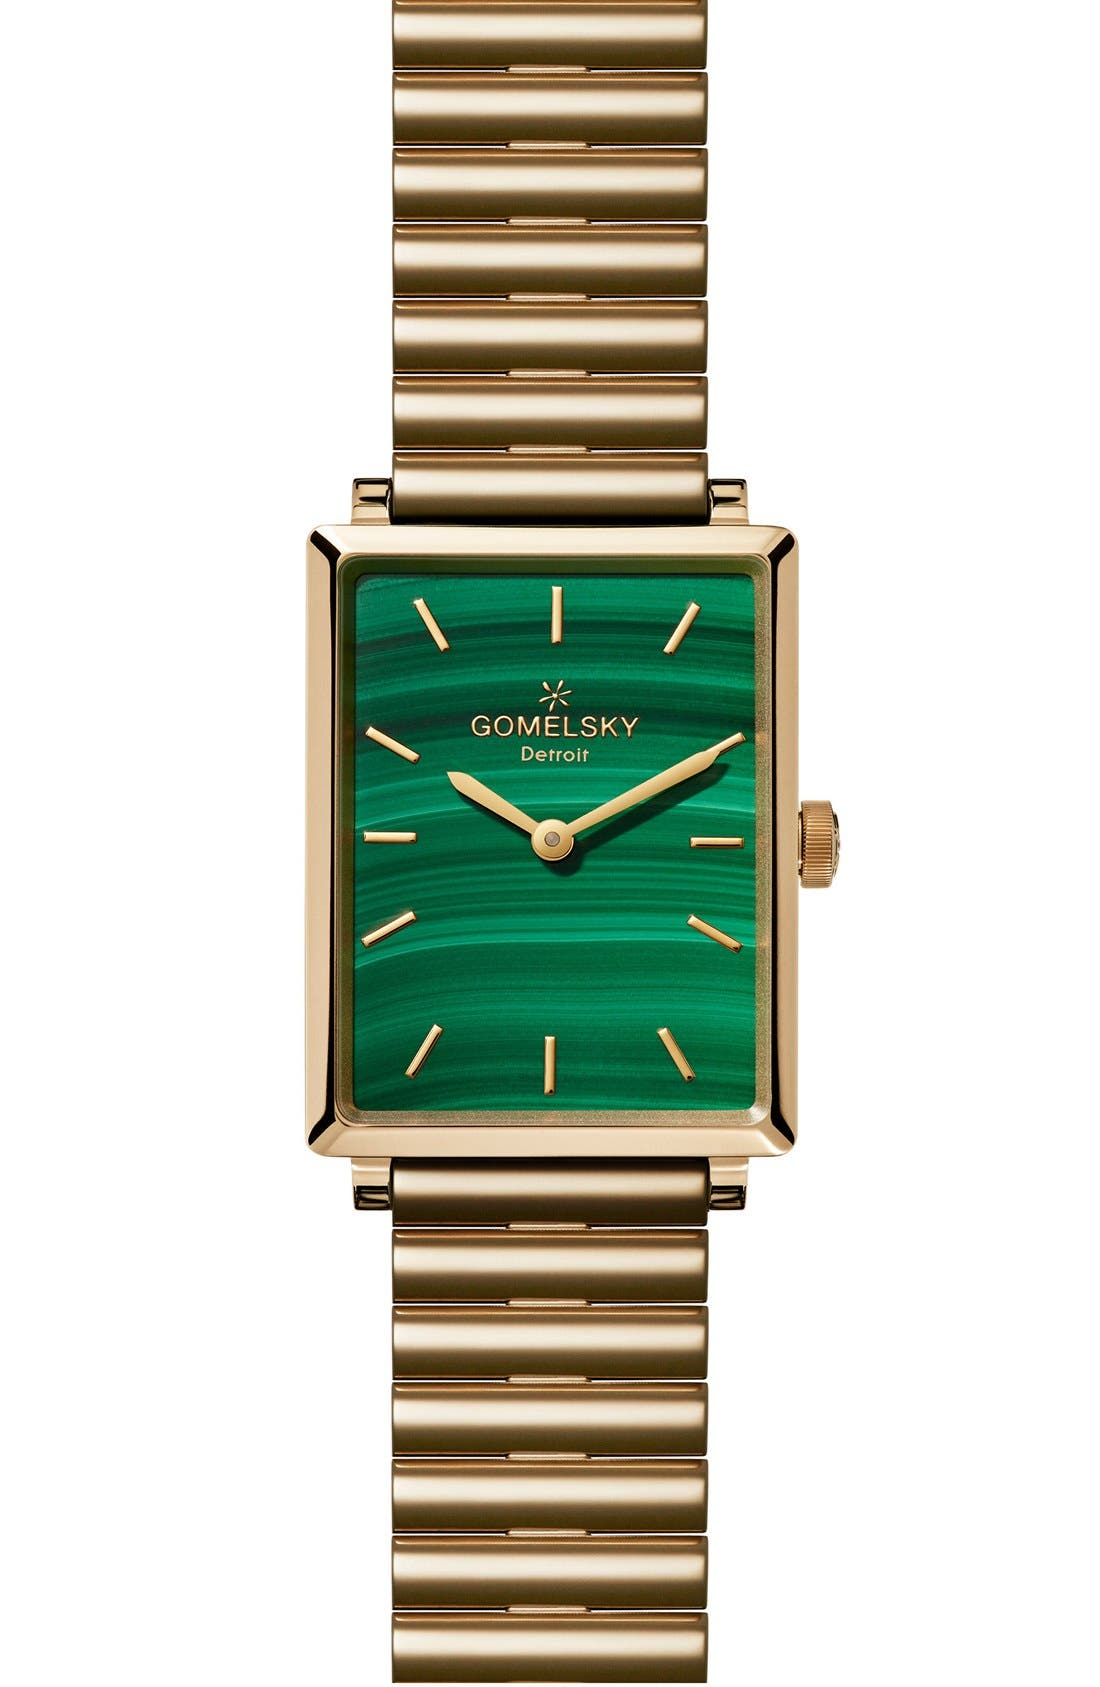 Main Image - Gomelsky The Shirley Fromer Bracelet Watch, 25mm x 35mm